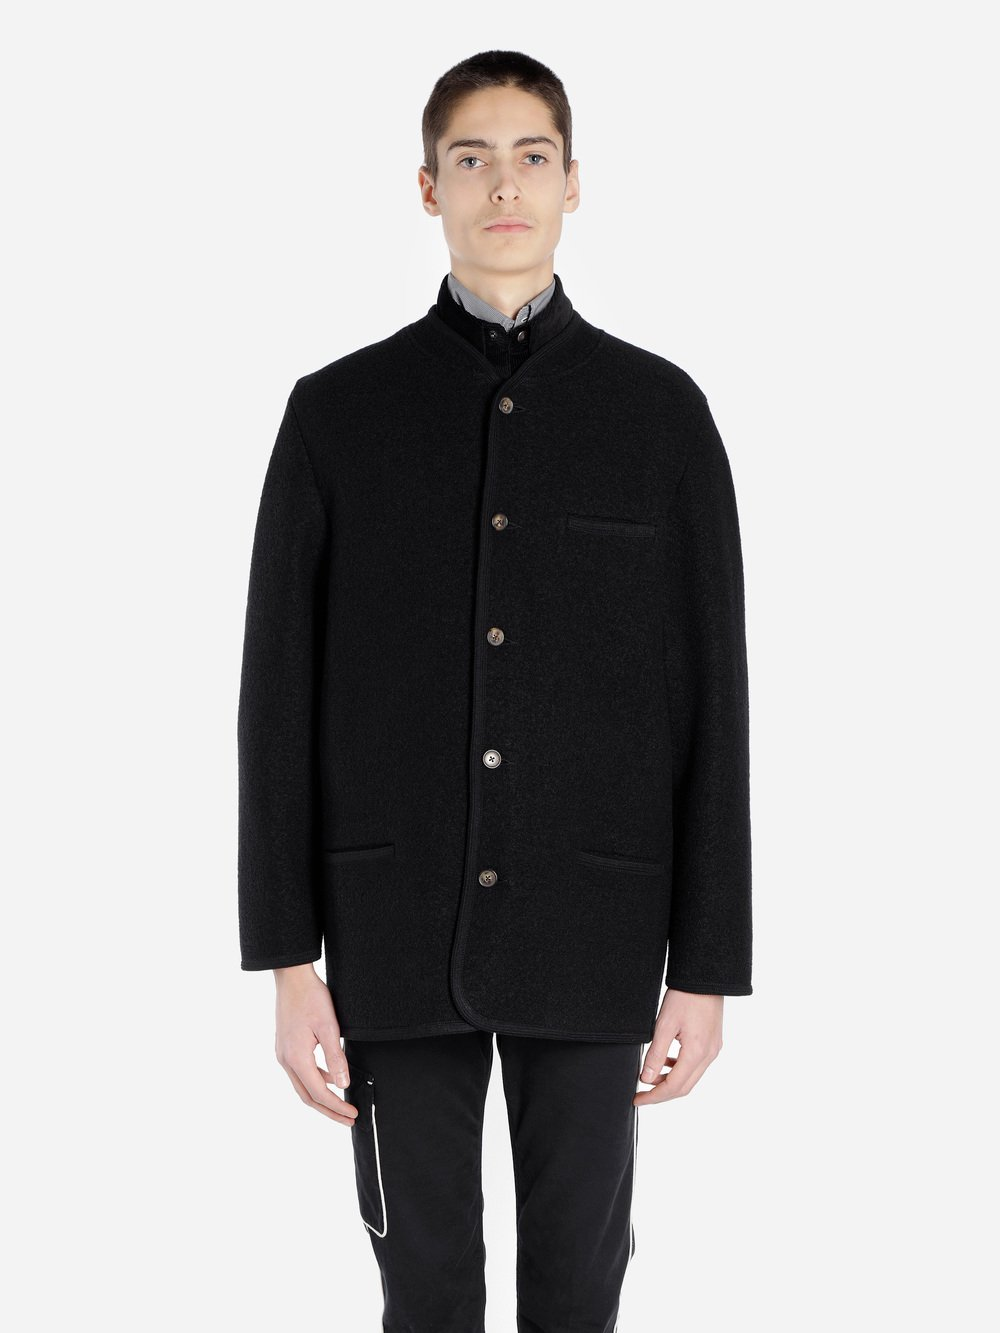 Image of Rier Jackets